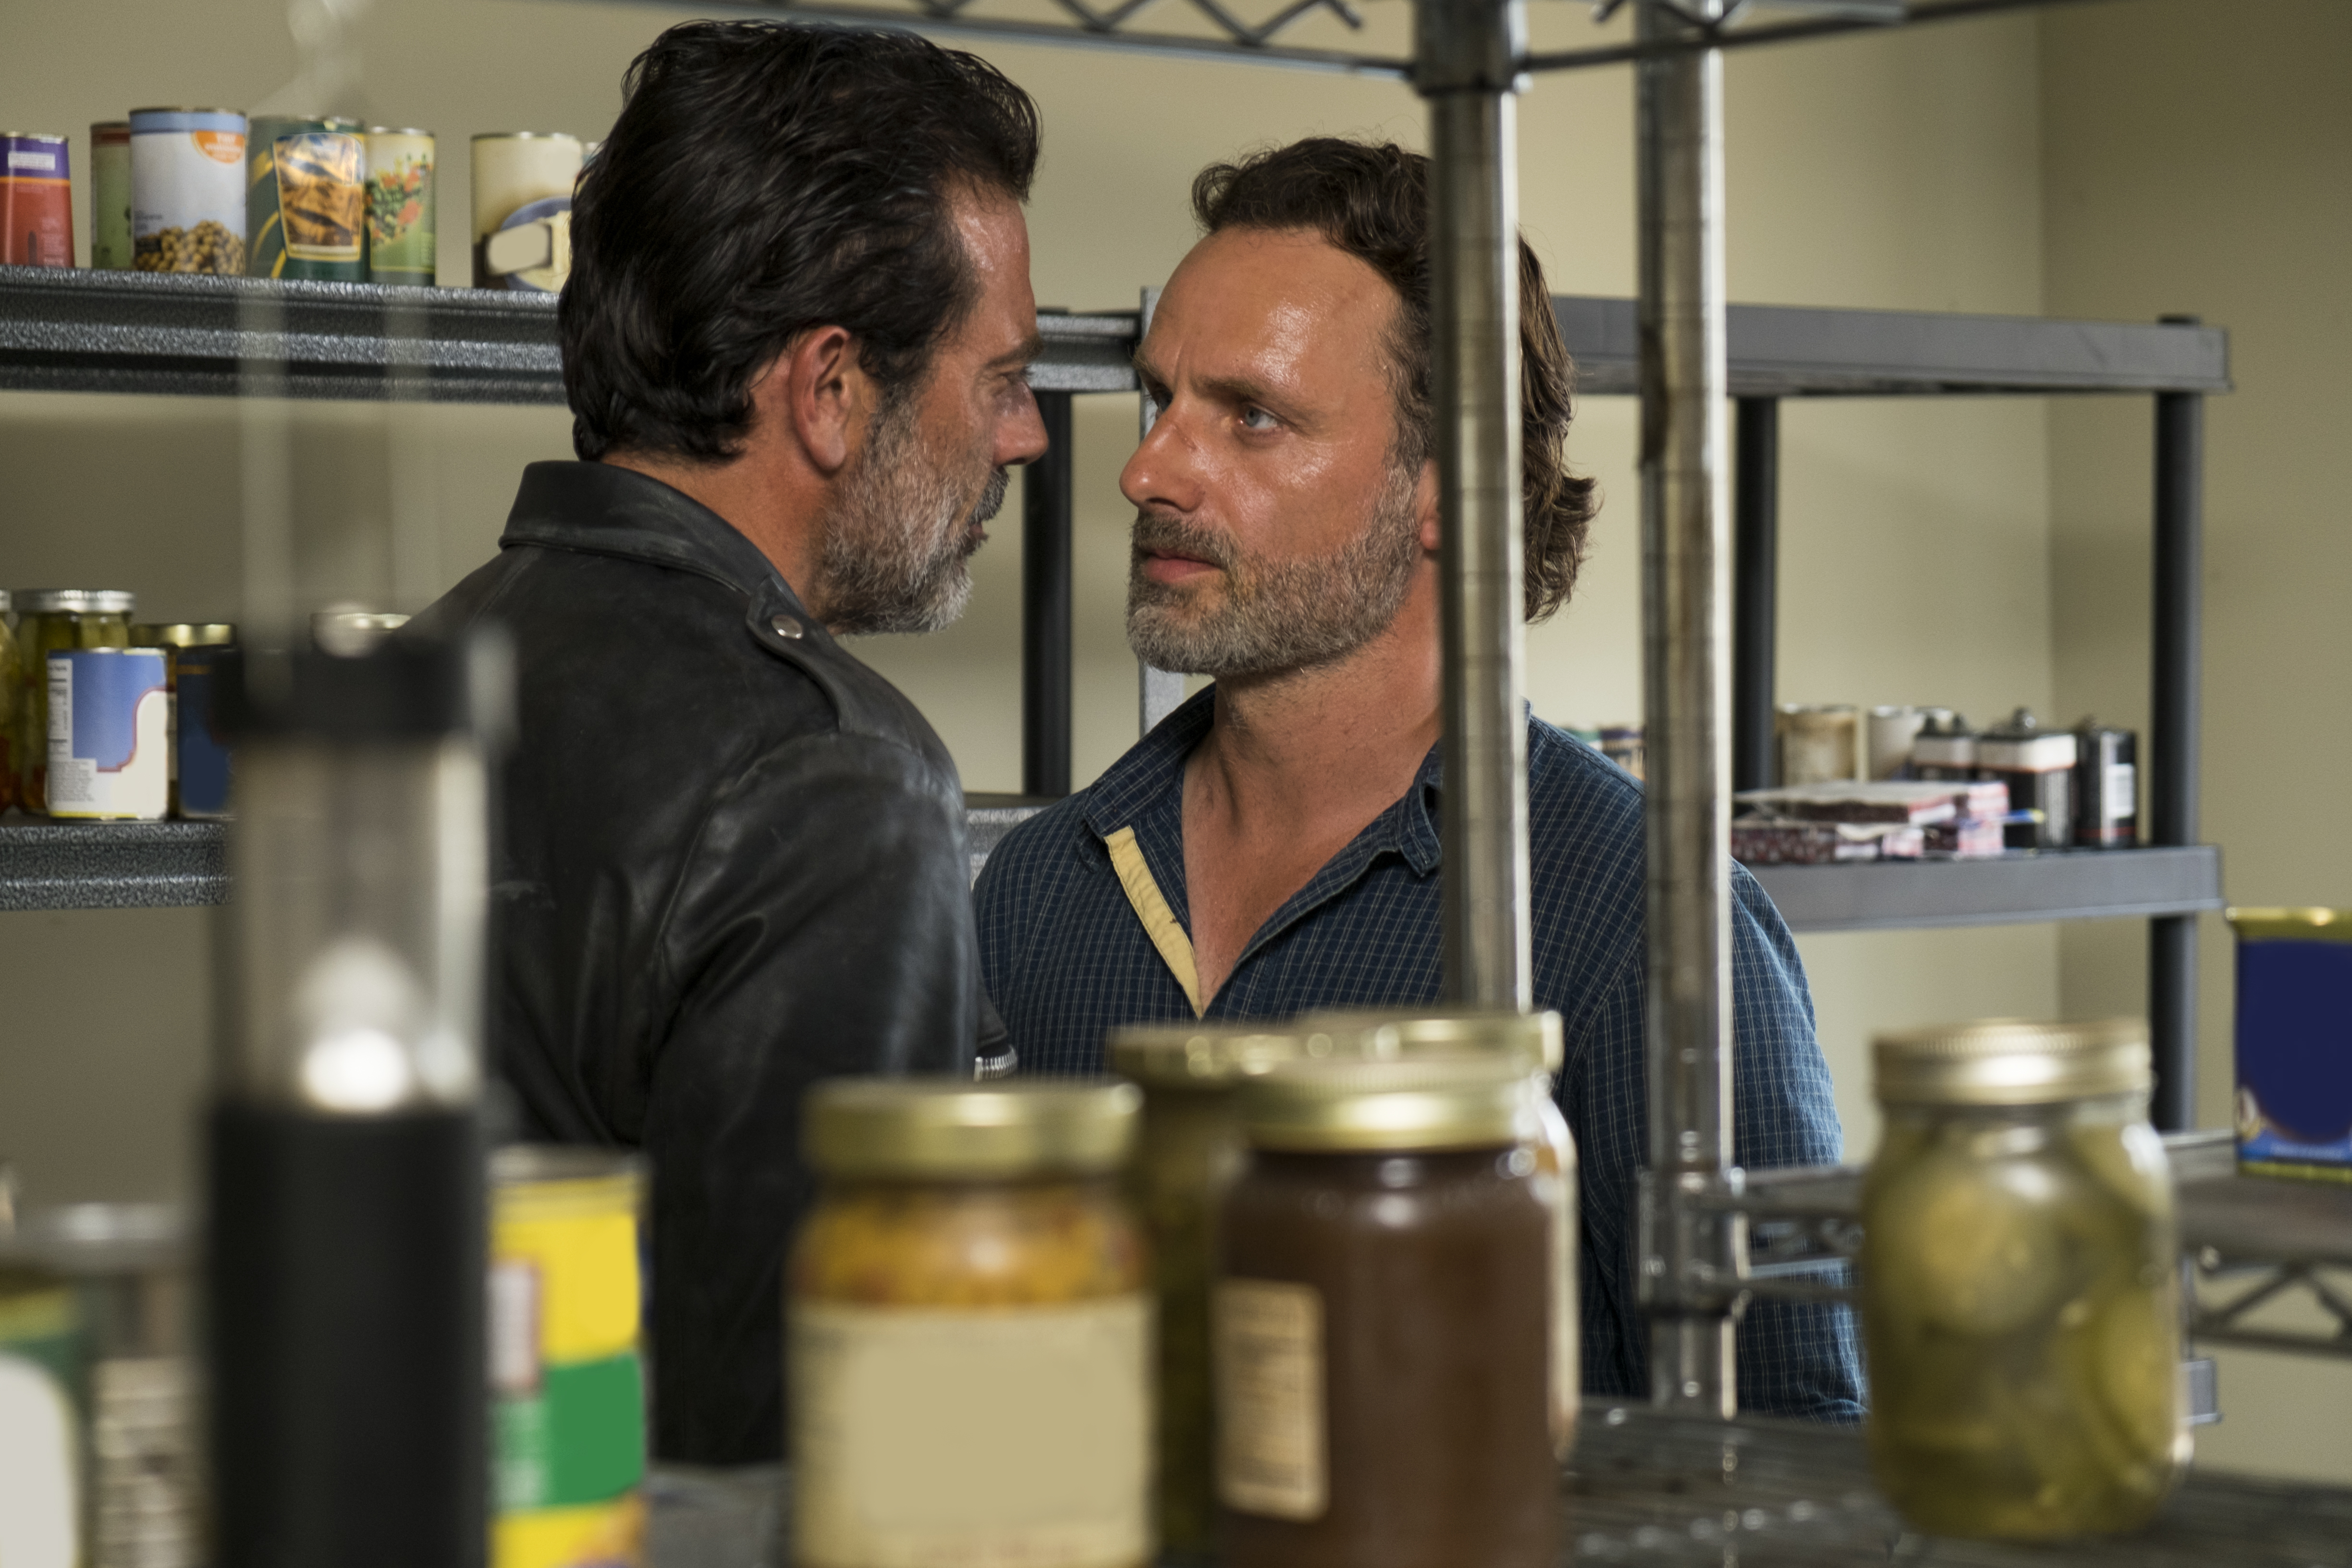 Negan's particular effect on Rick is evidenced by how often they're framed intimately.